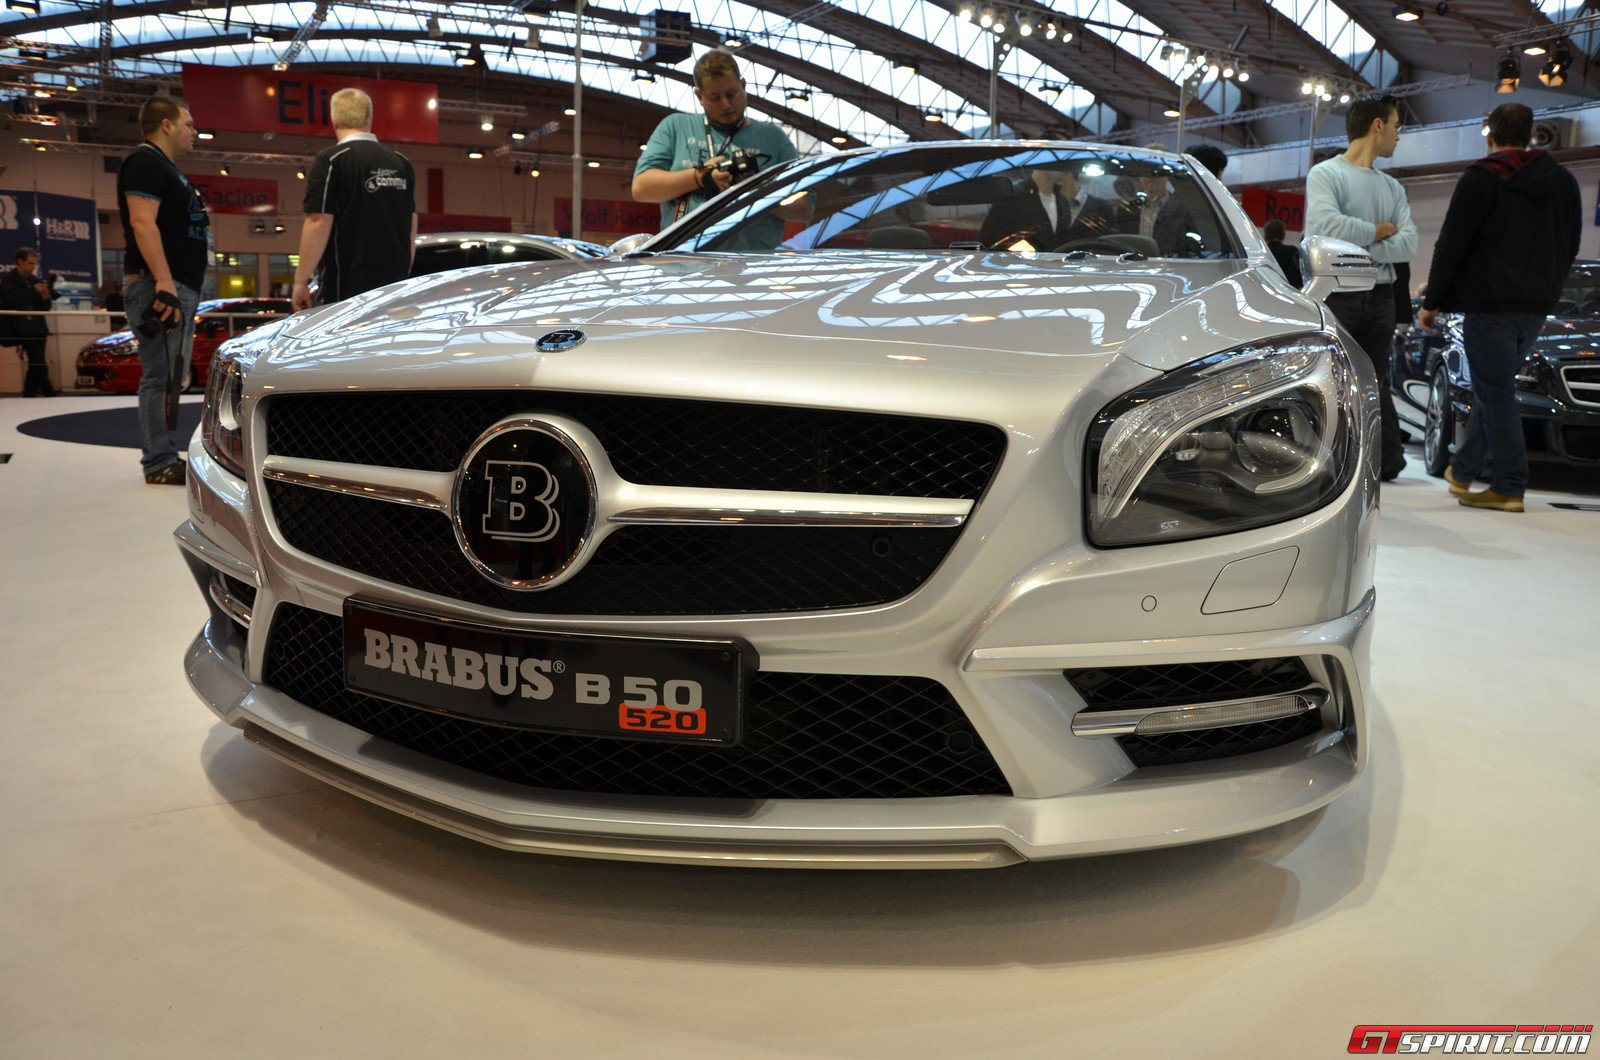 2019 Brabus Mercedes Benz SL Class photo - 6